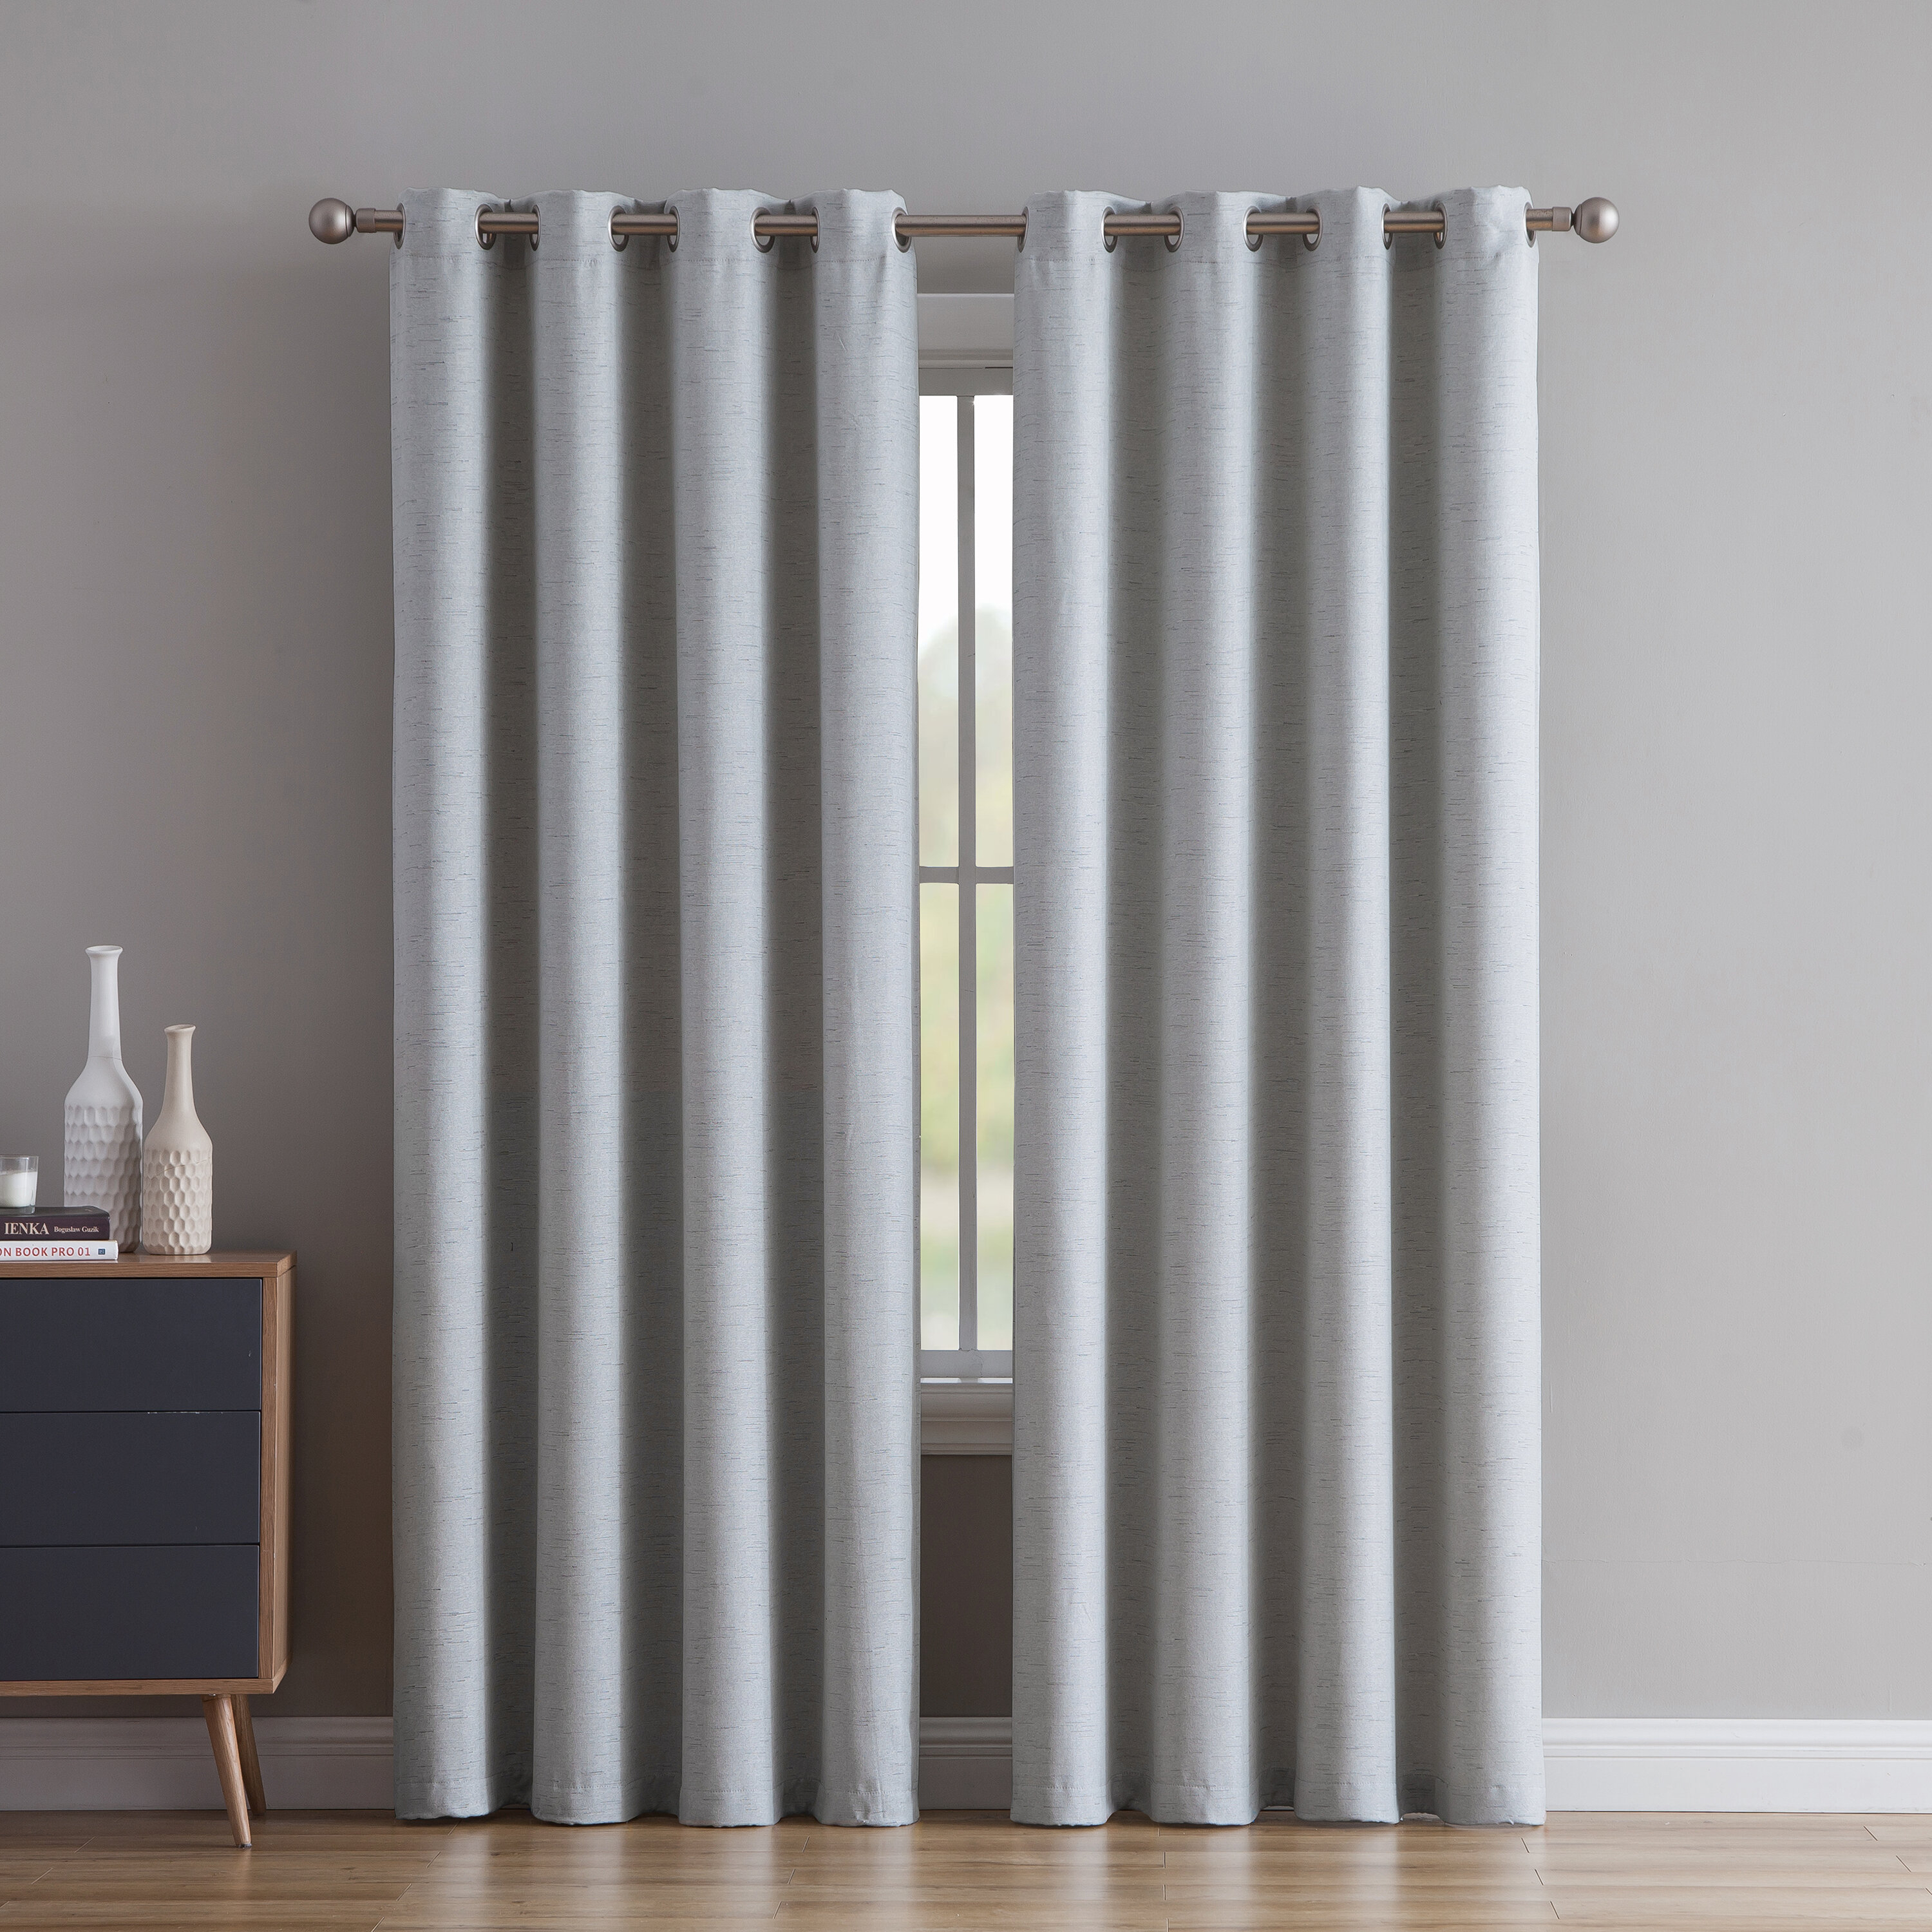 Cardin Solid Room Darkening Grommet Curtain Panels Intended For Velvet Solid Room Darkening Window Curtain Panel Sets (View 22 of 30)